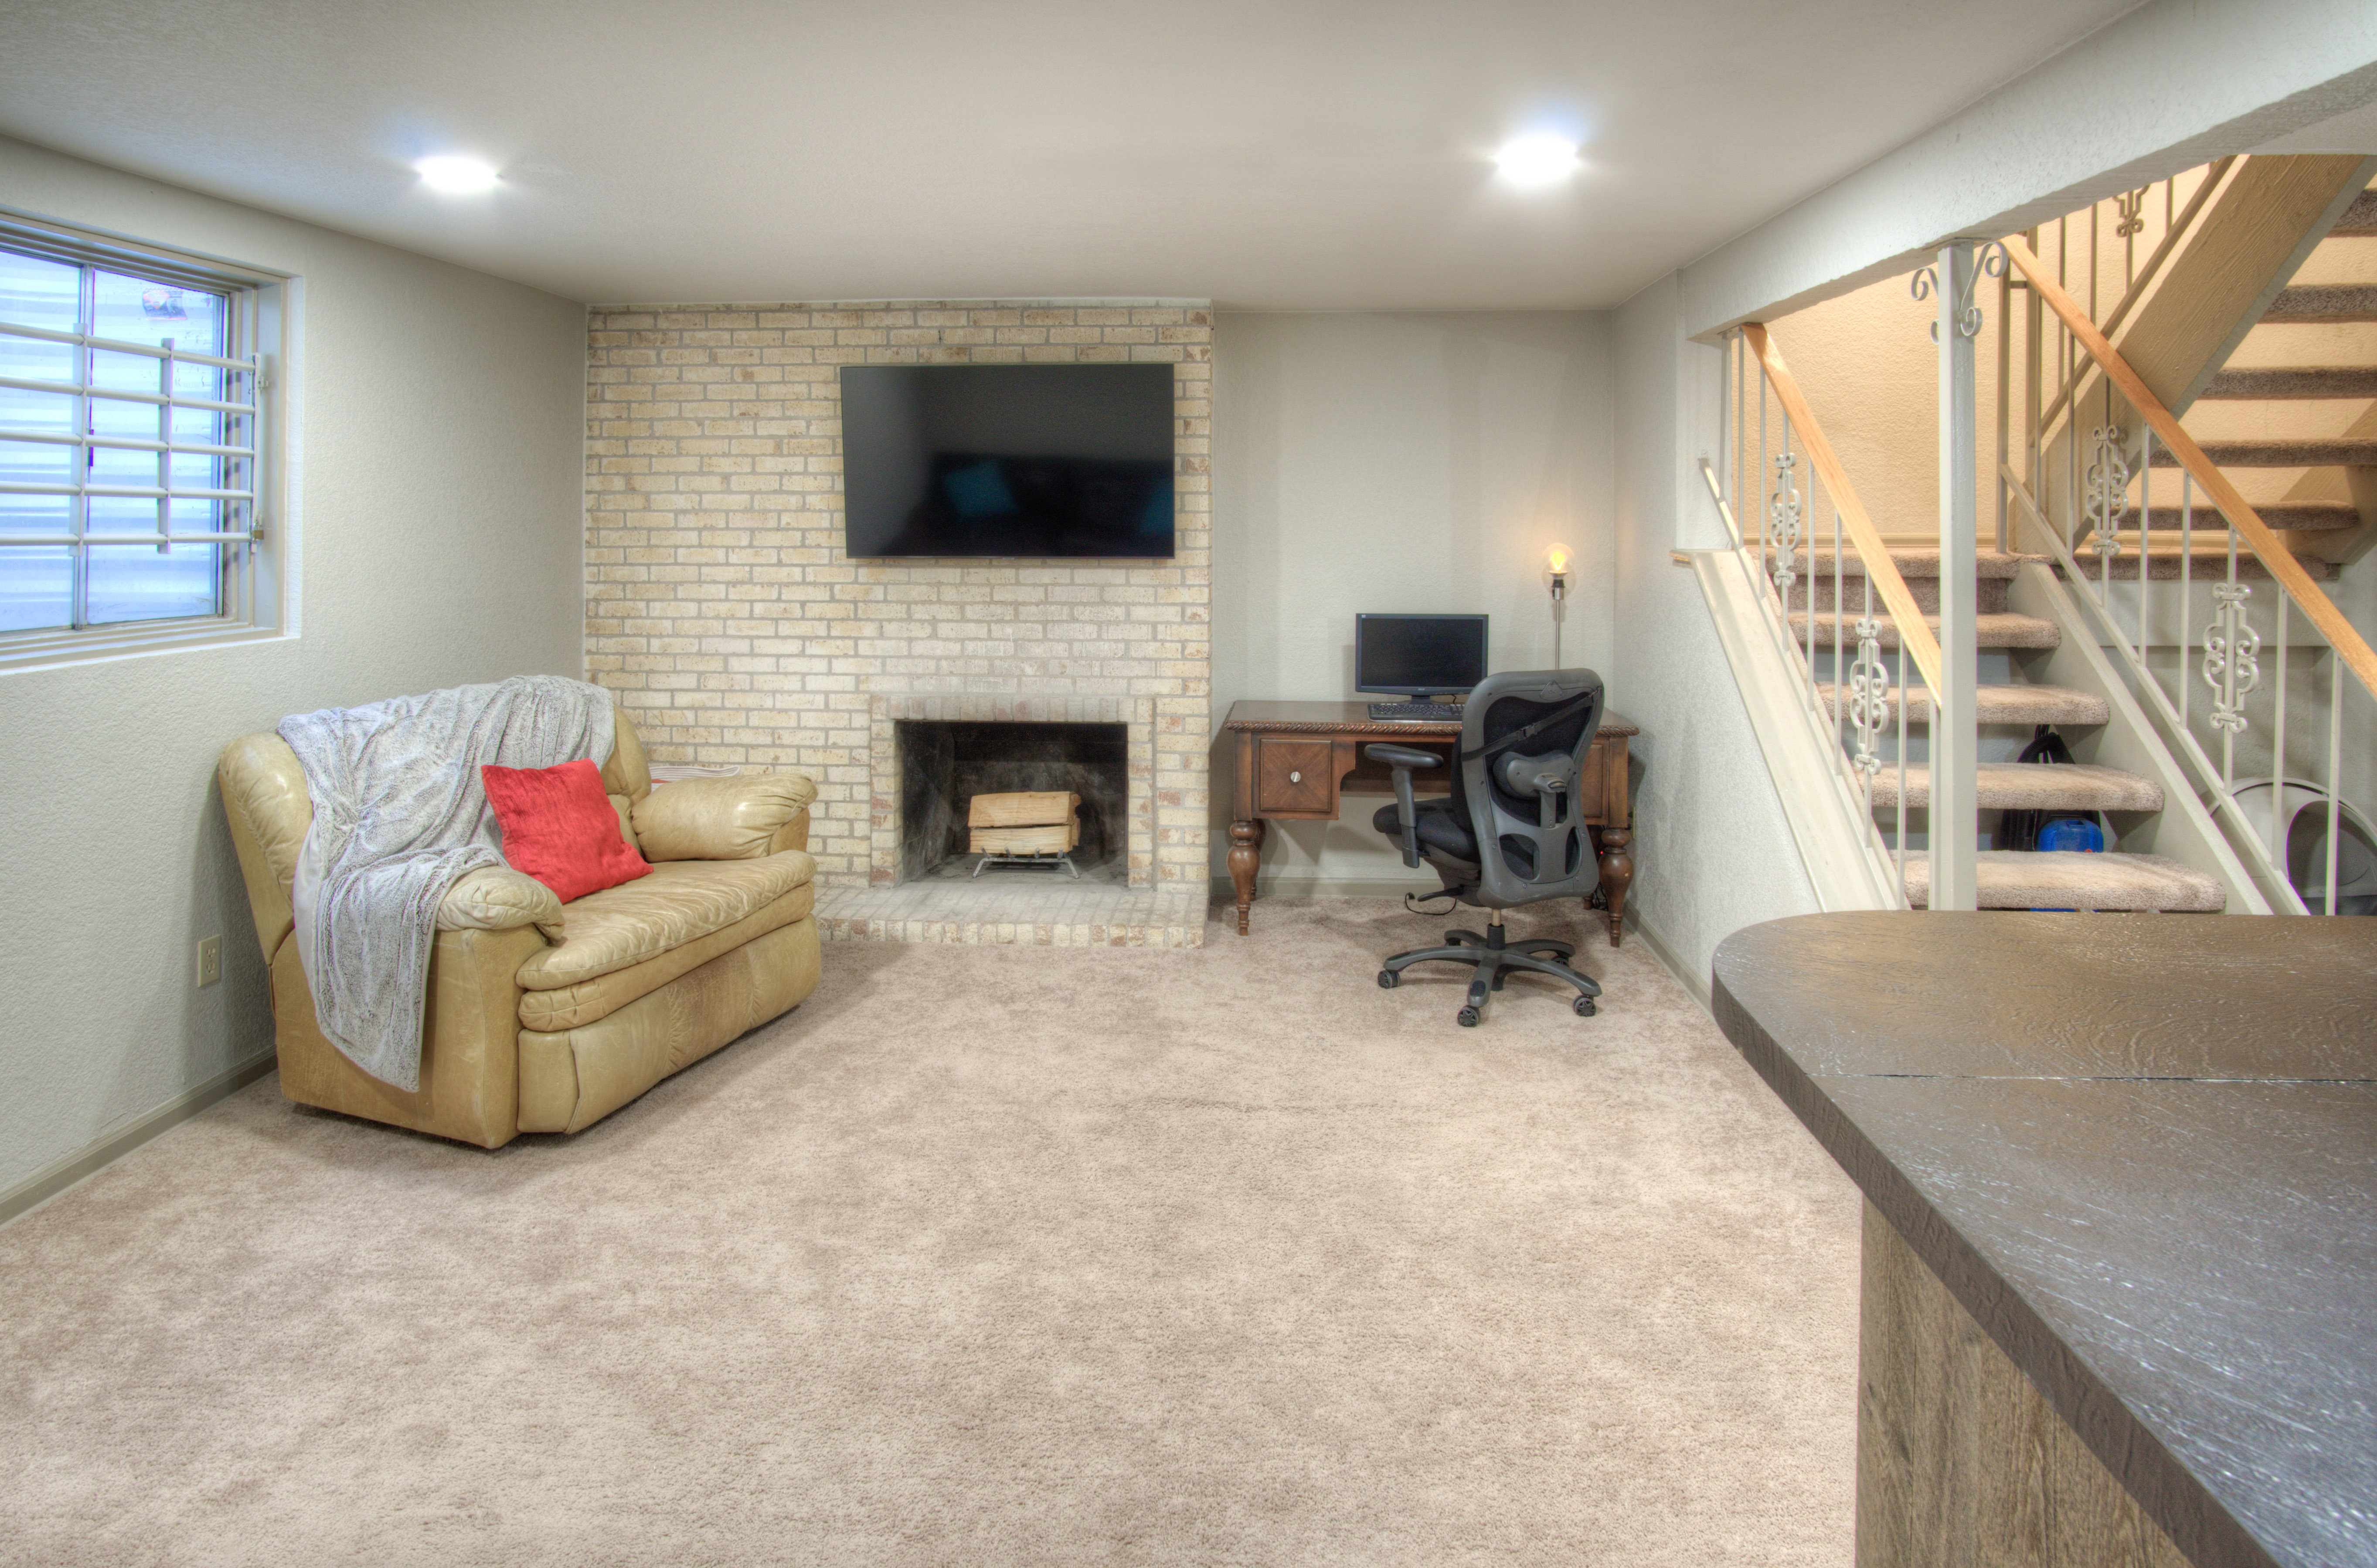 Second wood burning fireplace in bsmt living room